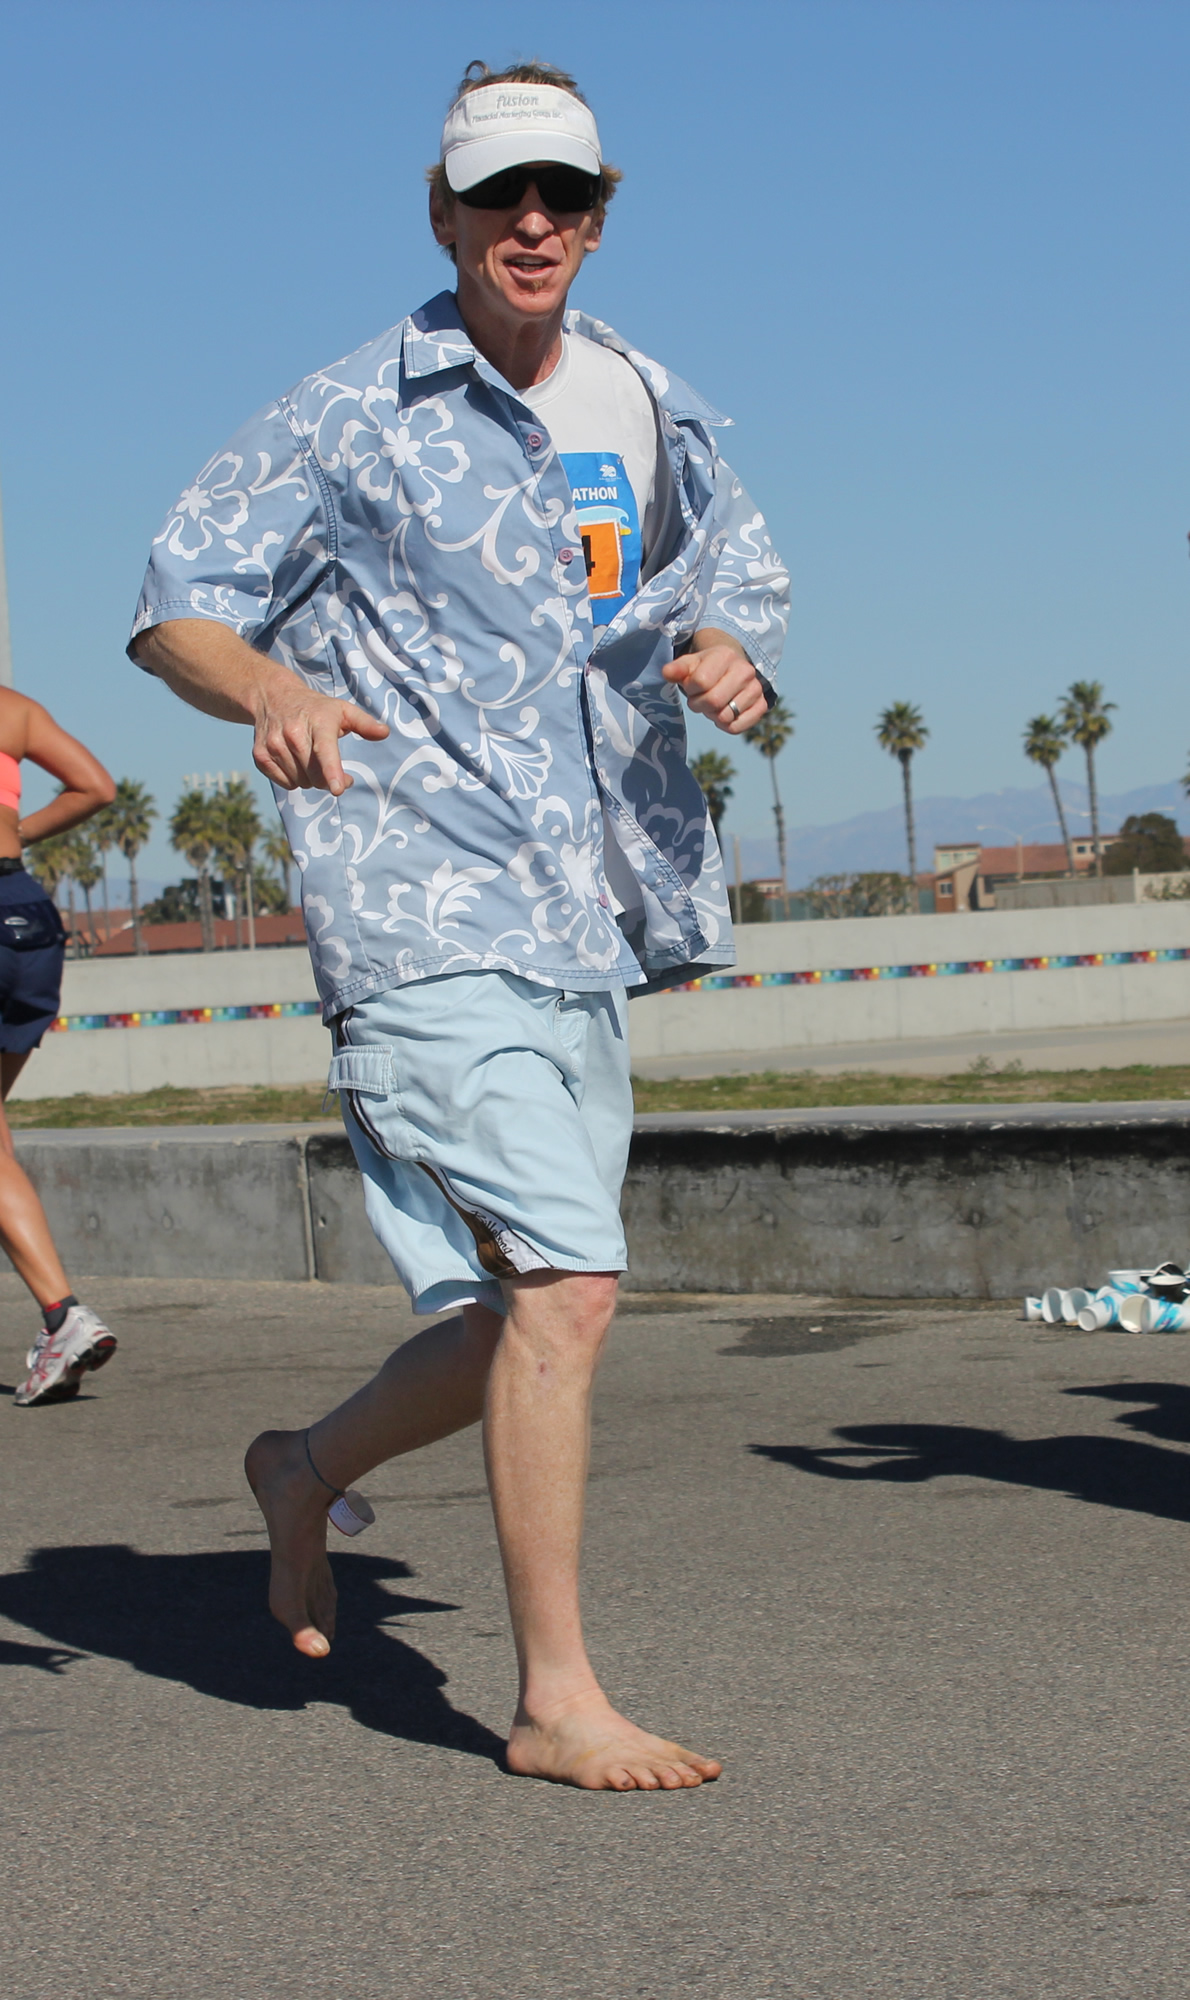 Kenneth McNeely (AKA Barefoot Kenny) (2012 February 5) Surf City Marathon